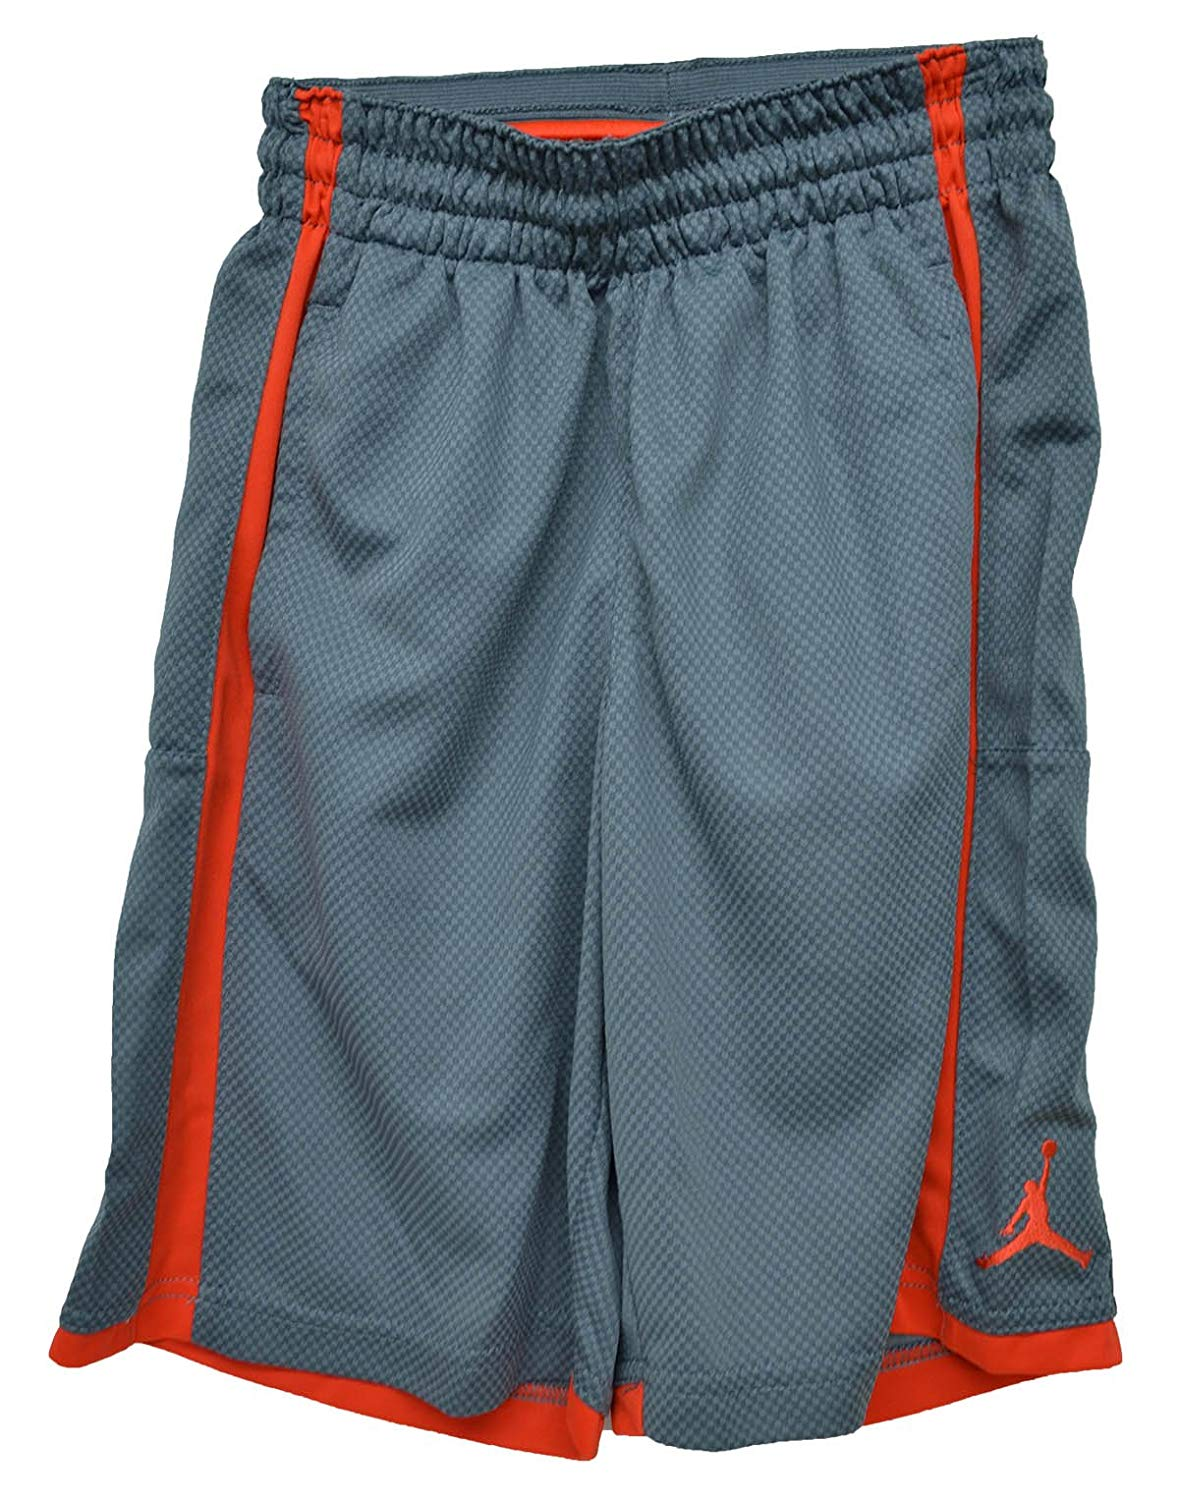 0a351e9f55a Cheap Grey Jordan Shorts, find Grey Jordan Shorts deals on line at ...